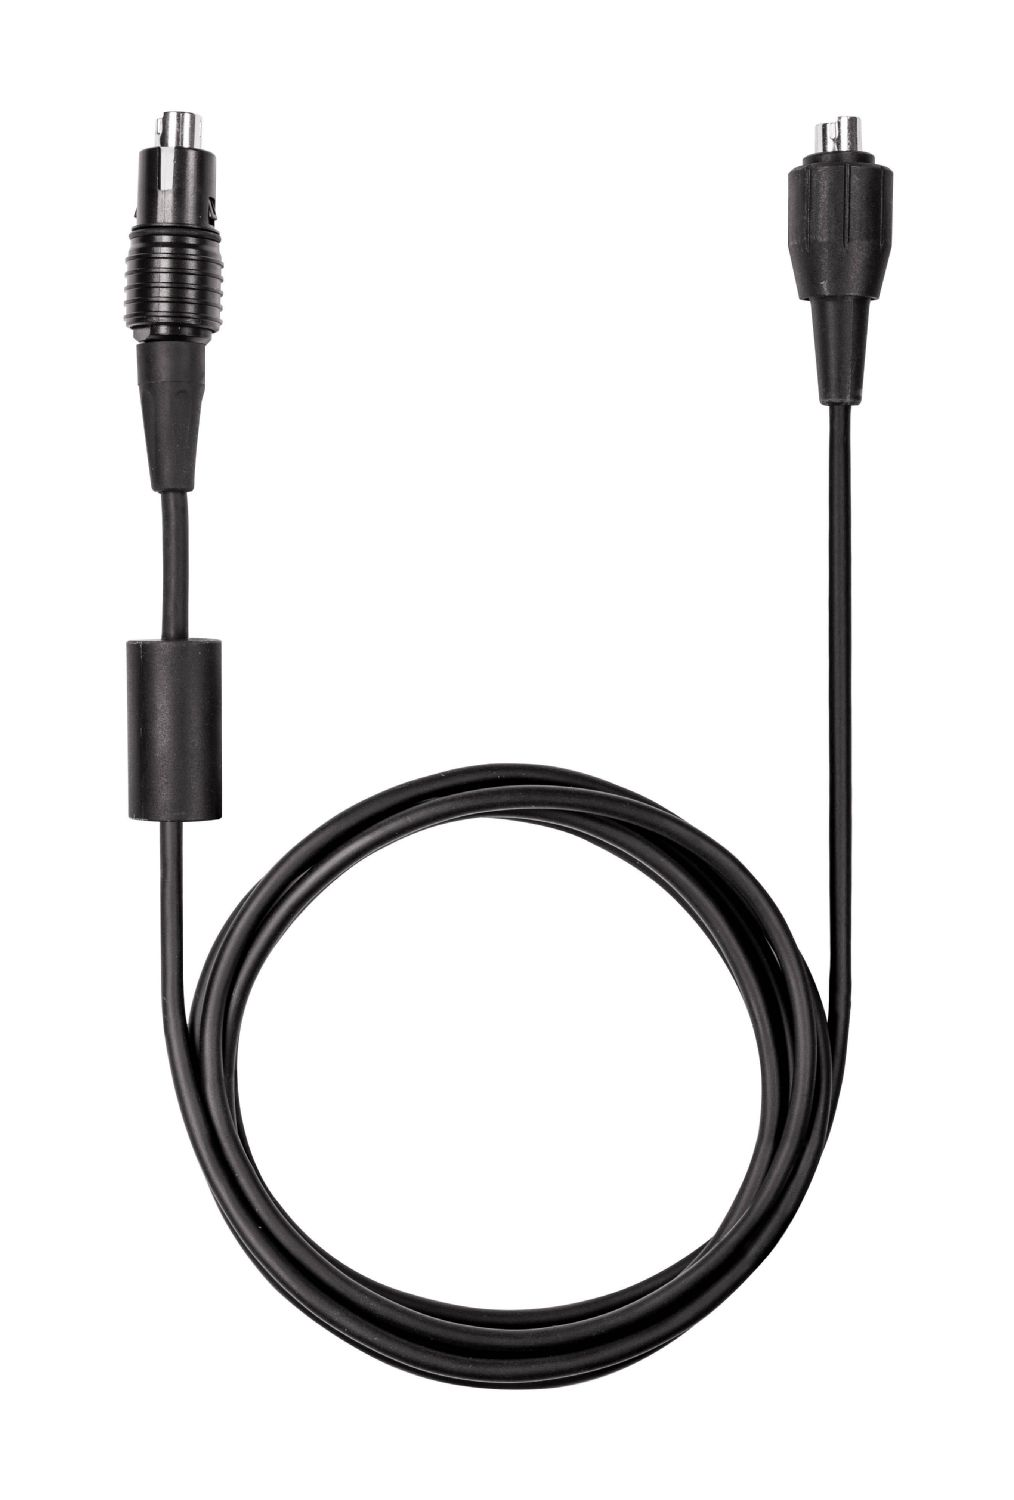 Plug-in head cable for digital probes